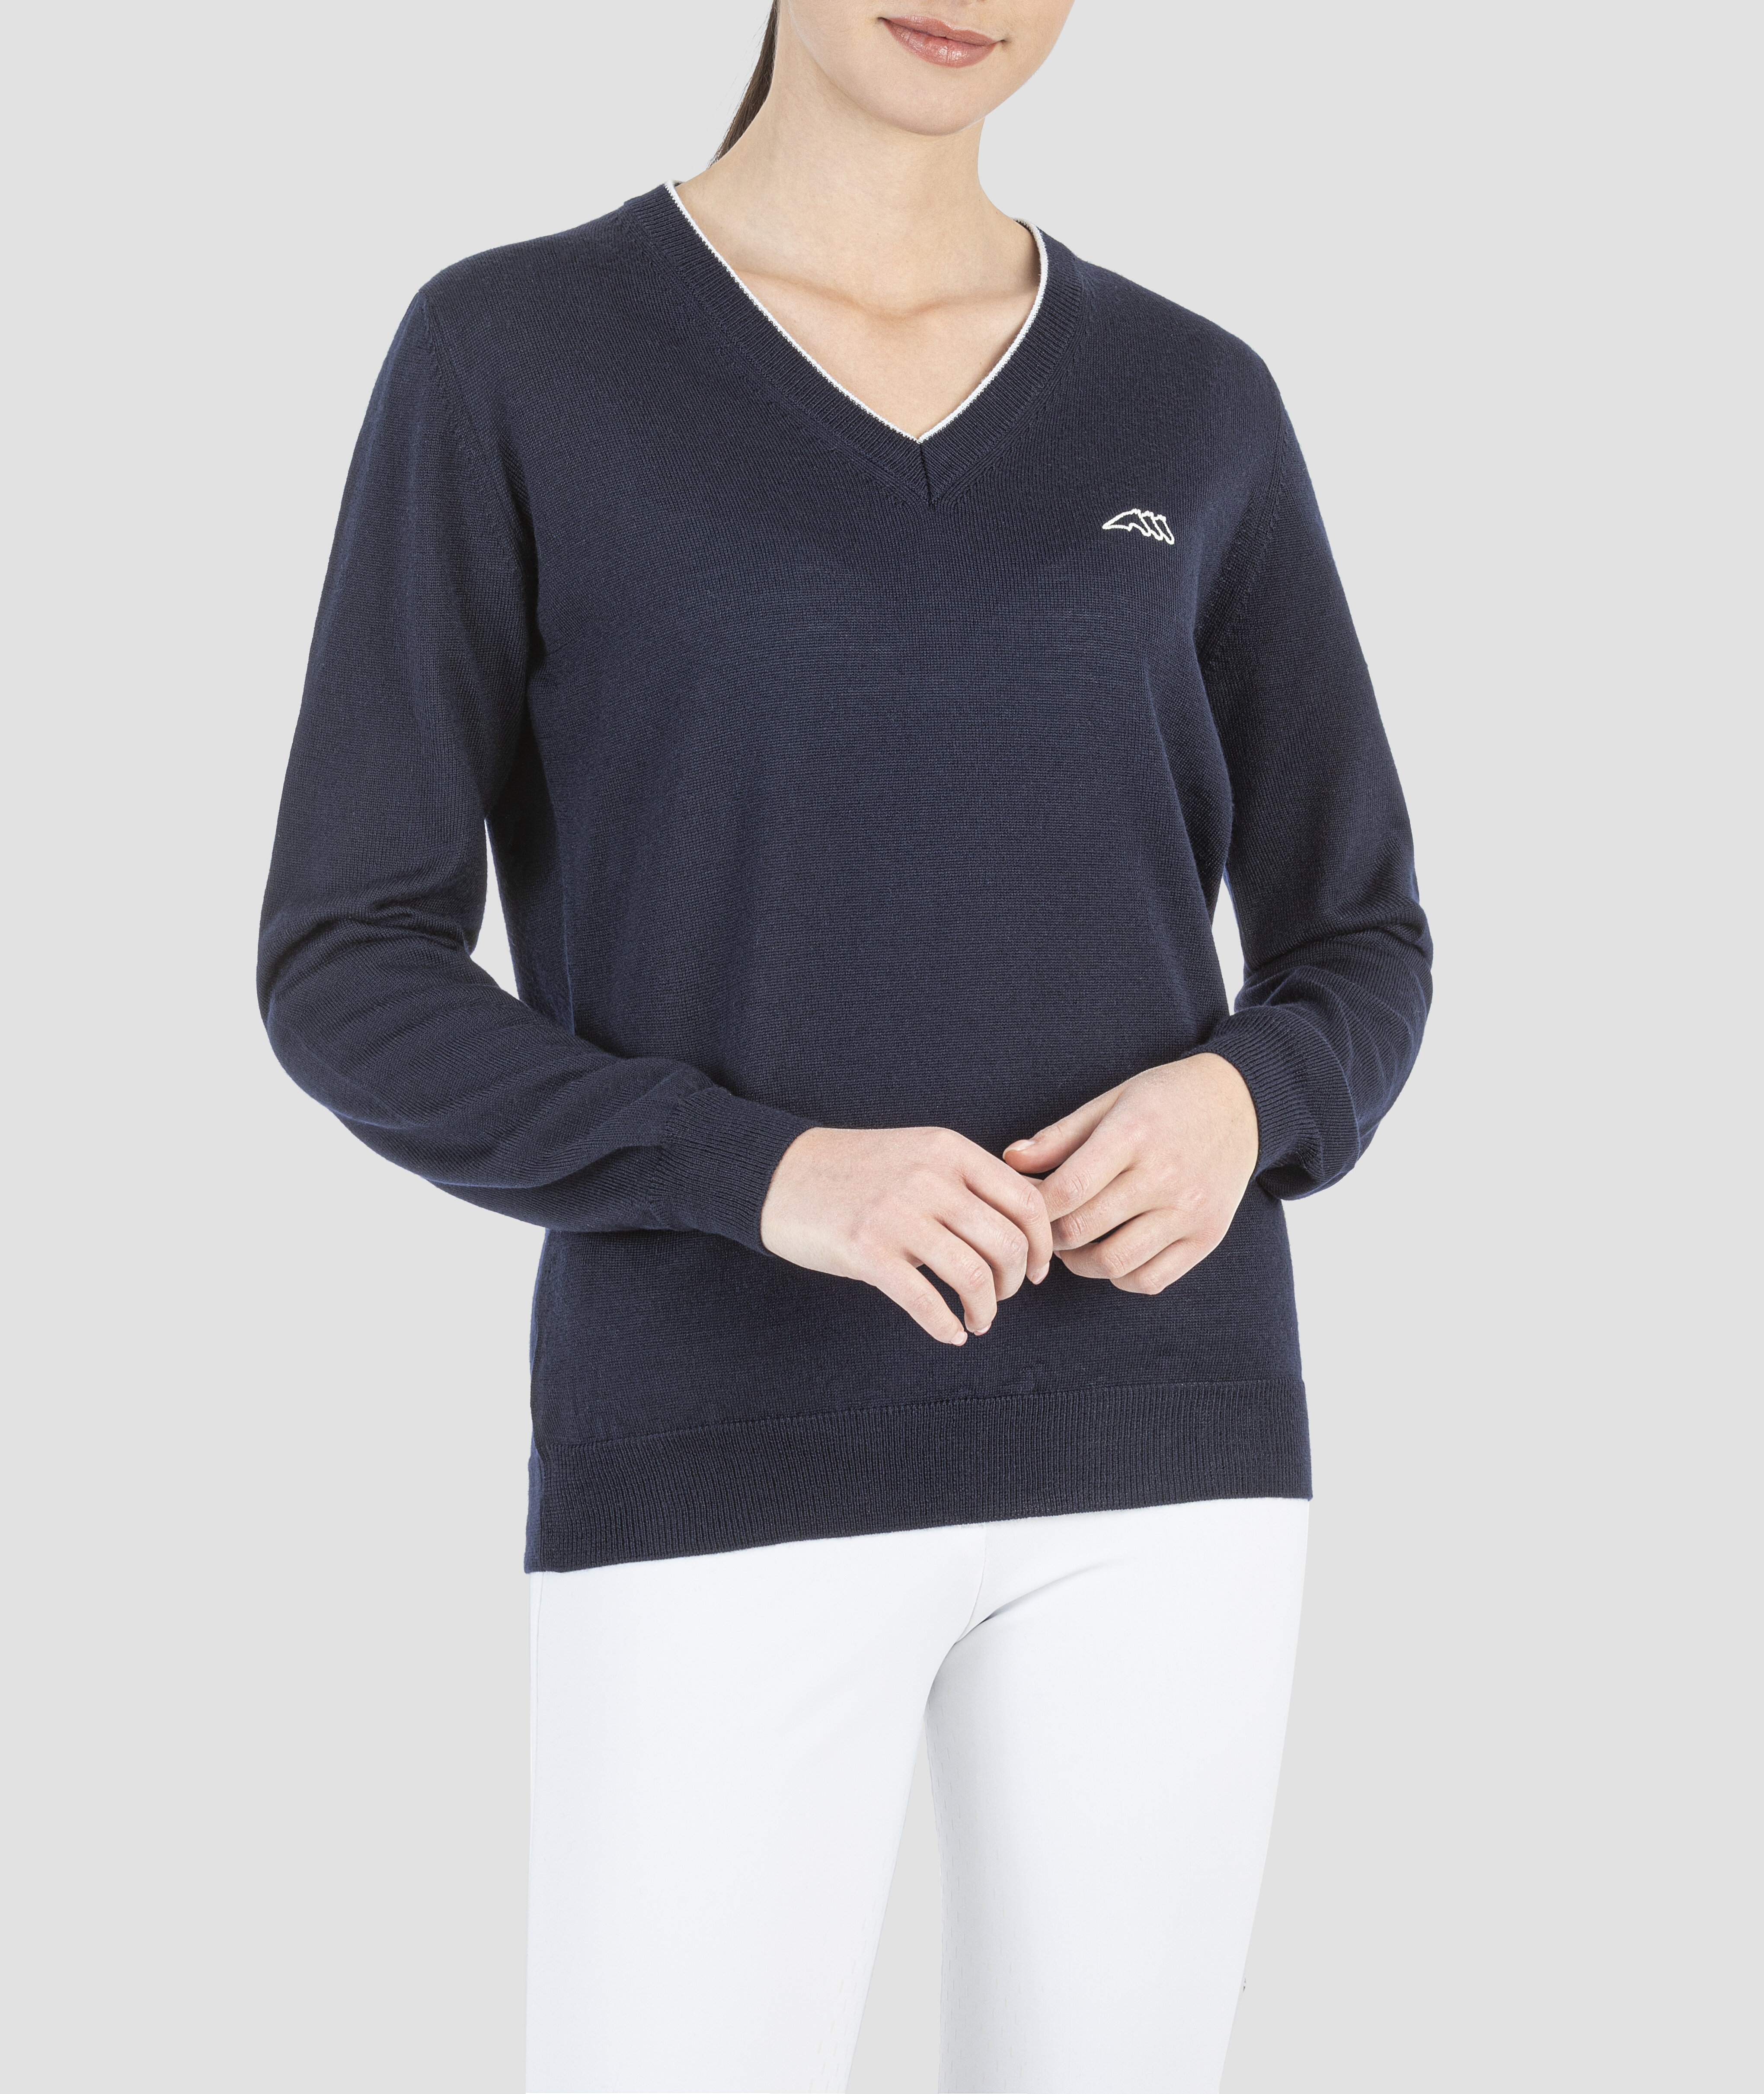 Ceklic Ladies Knitted Pullover - Navy